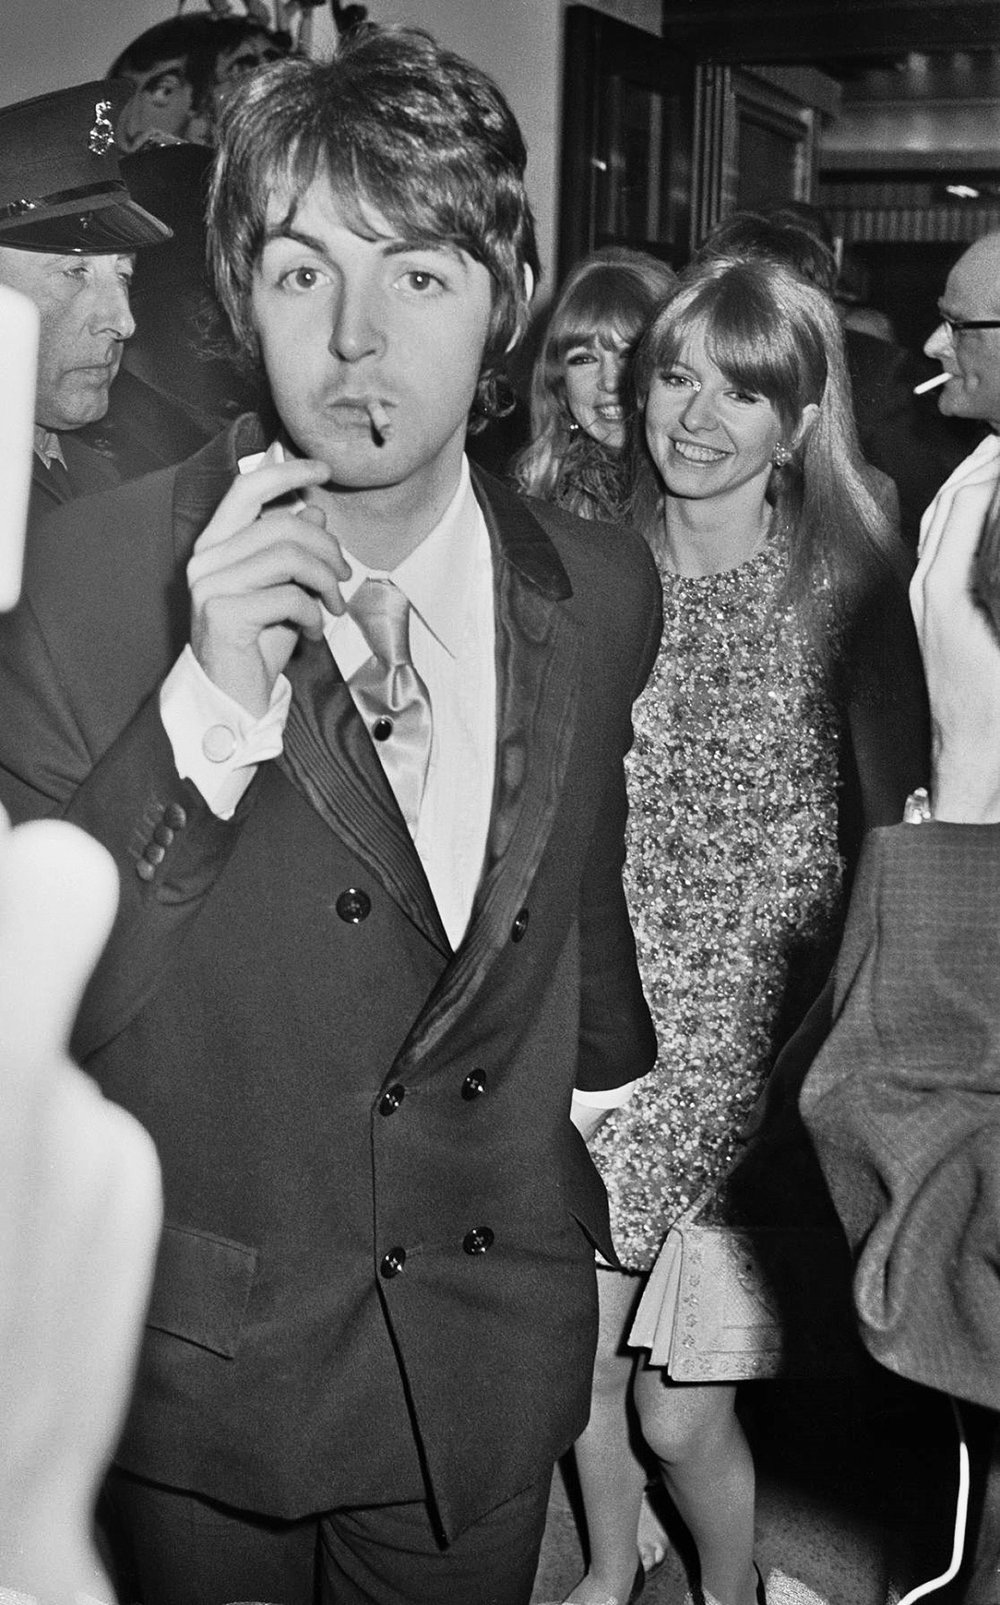 Paul McCartney and Jane Asher at the premiere of How I Won the War, October 18th 1967.